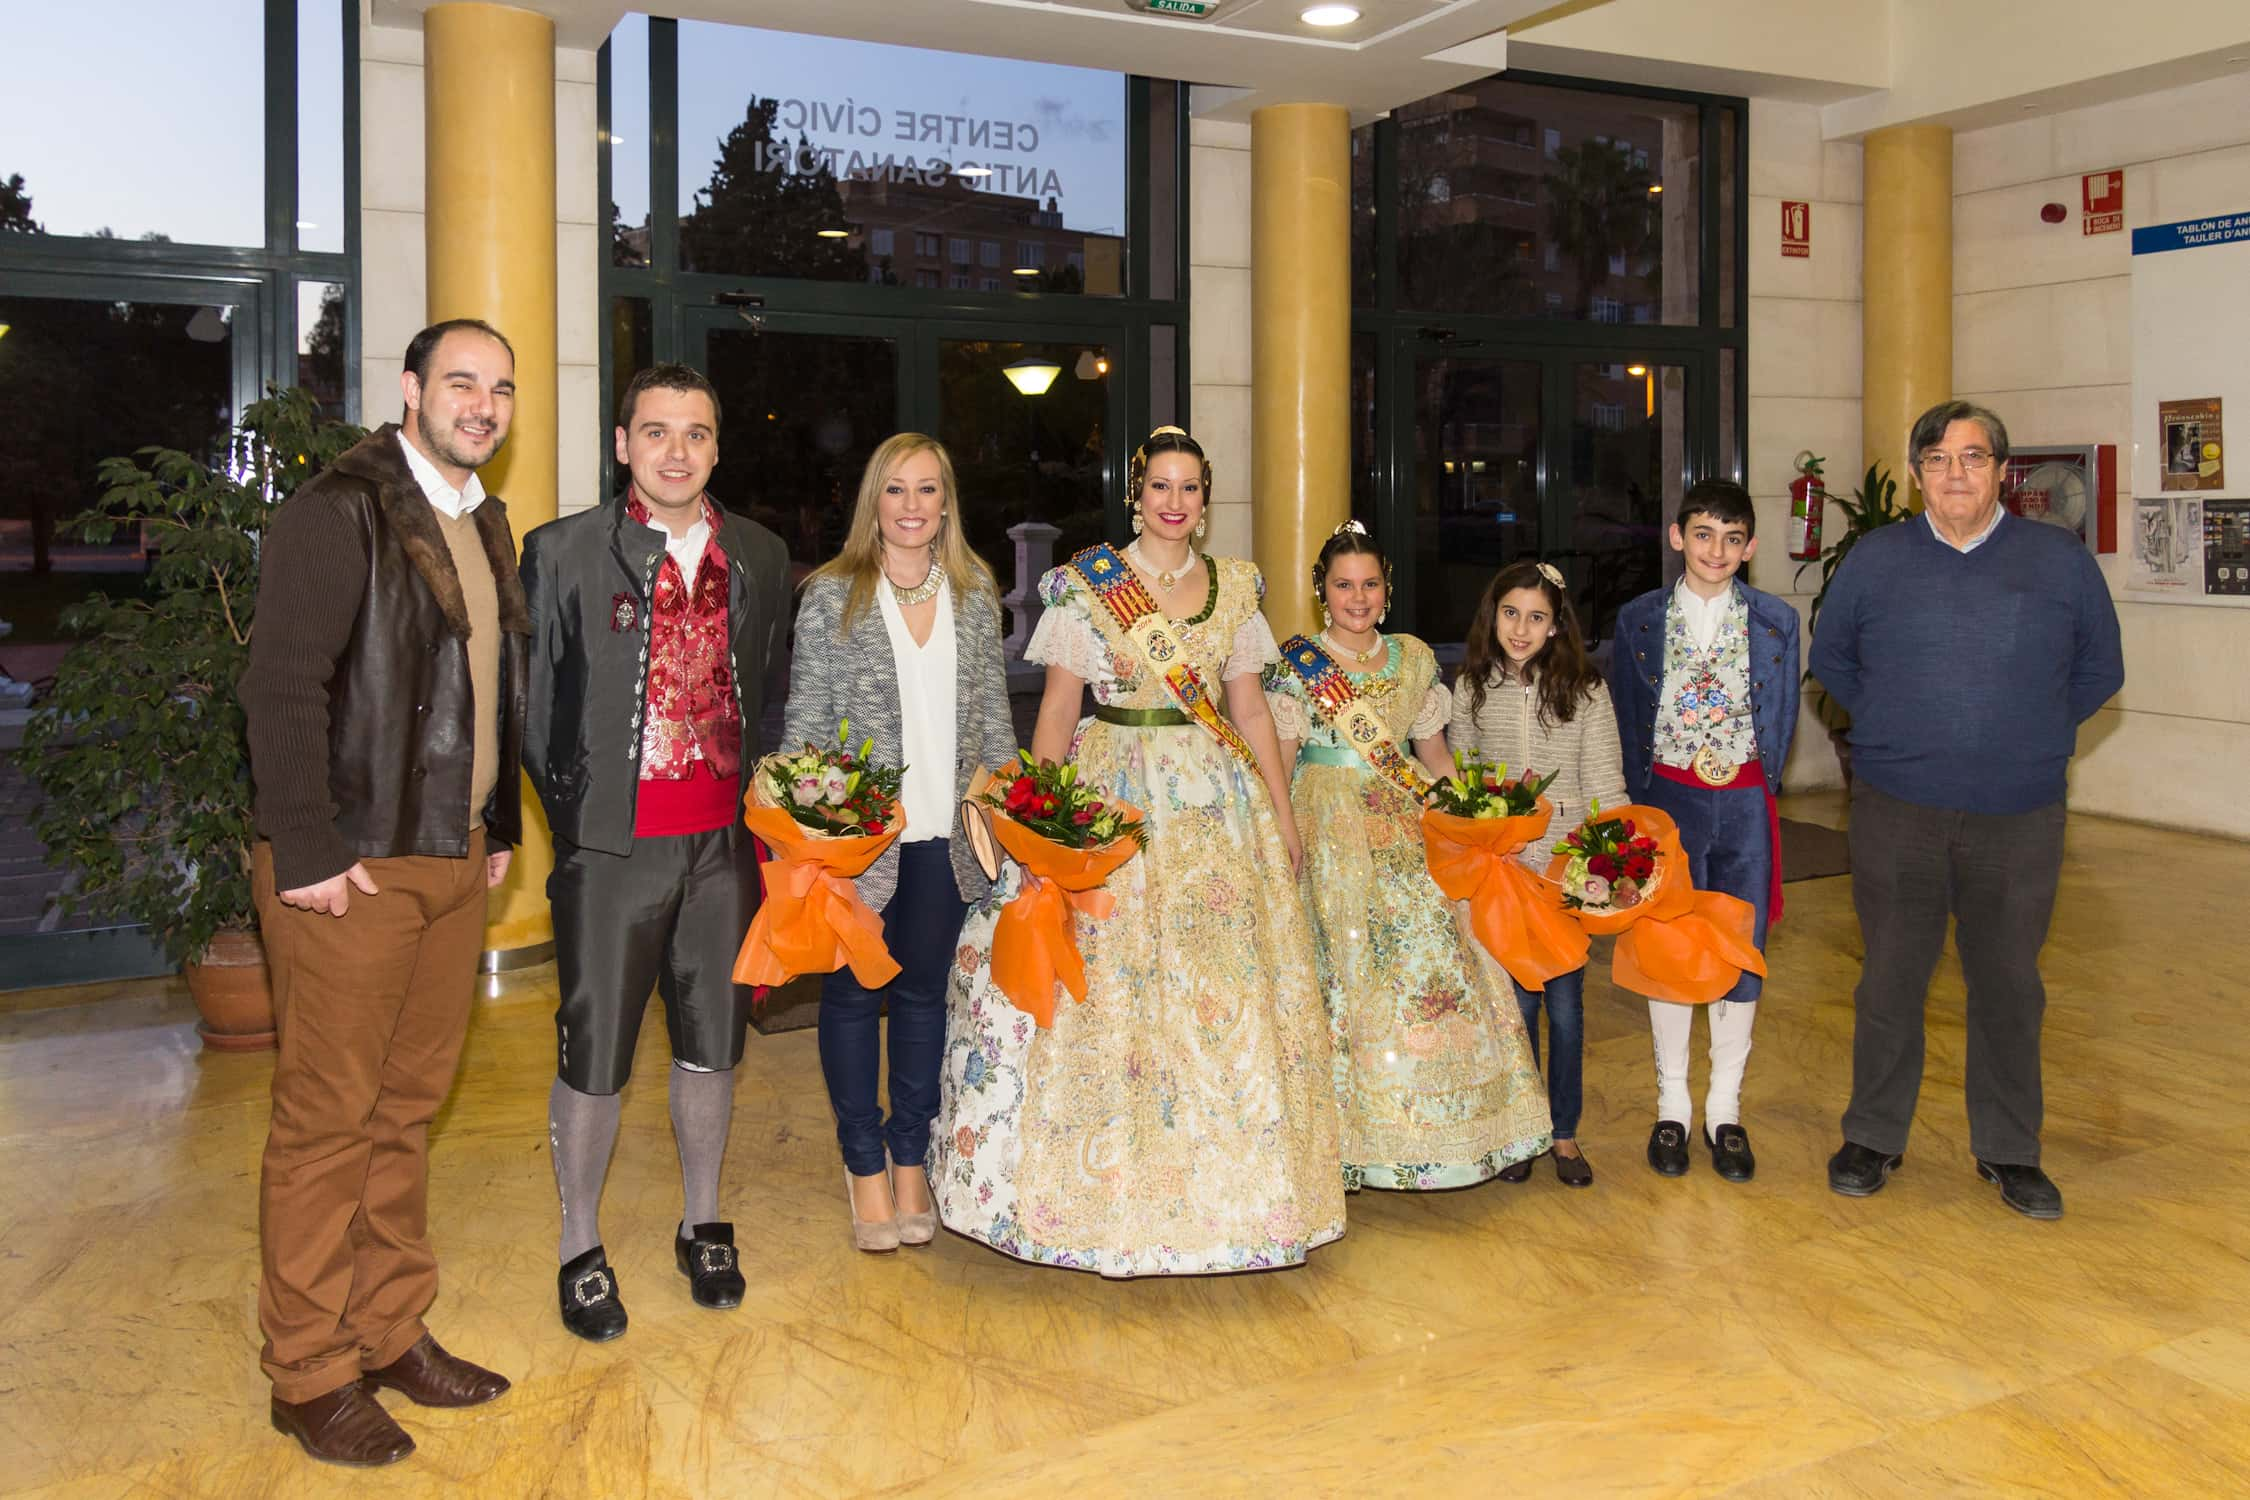 La Victoria Falla presents its Llibret with an emotional tribute to the Fallas Miguel Angel joy